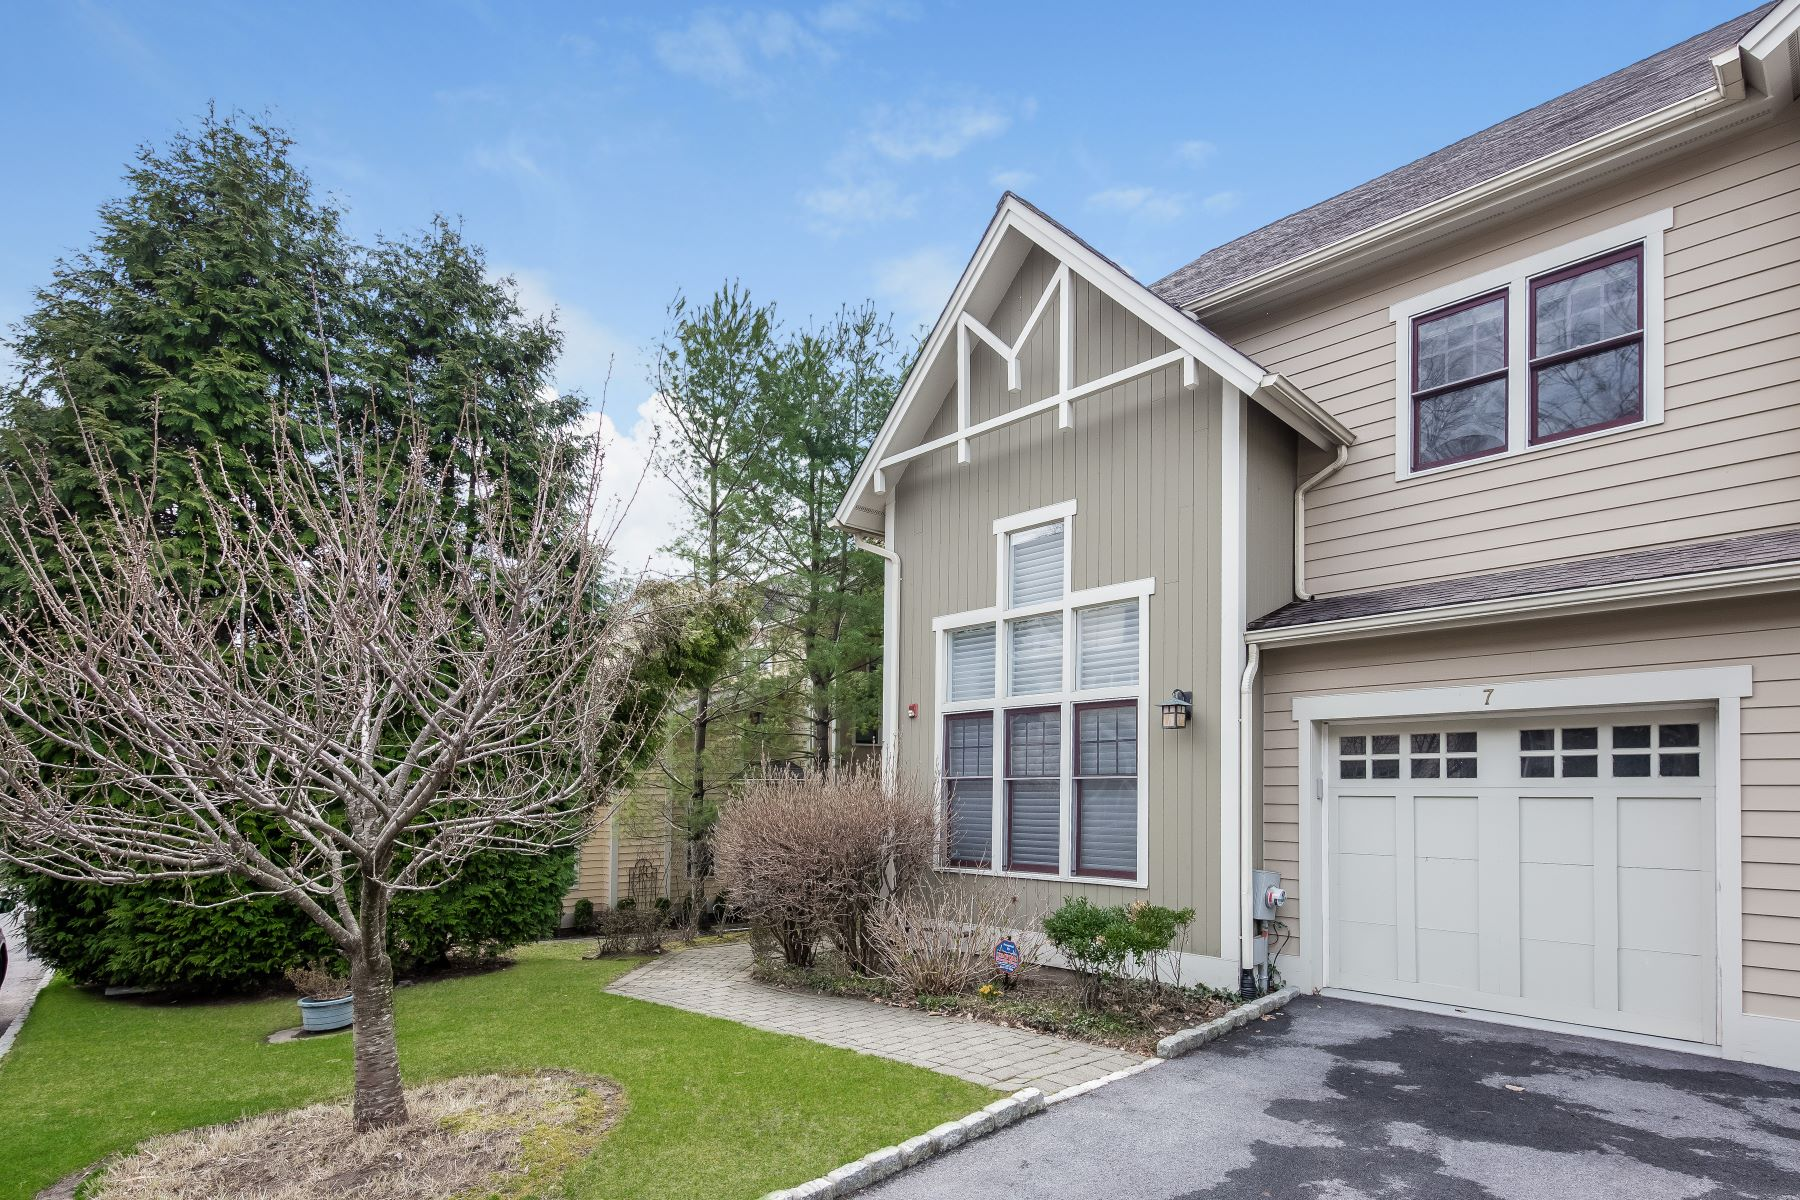 Single Family Homes for Sale at Luxury Town House Community 7 Hudson Drive Dobbs Ferry, New York 10522 United States